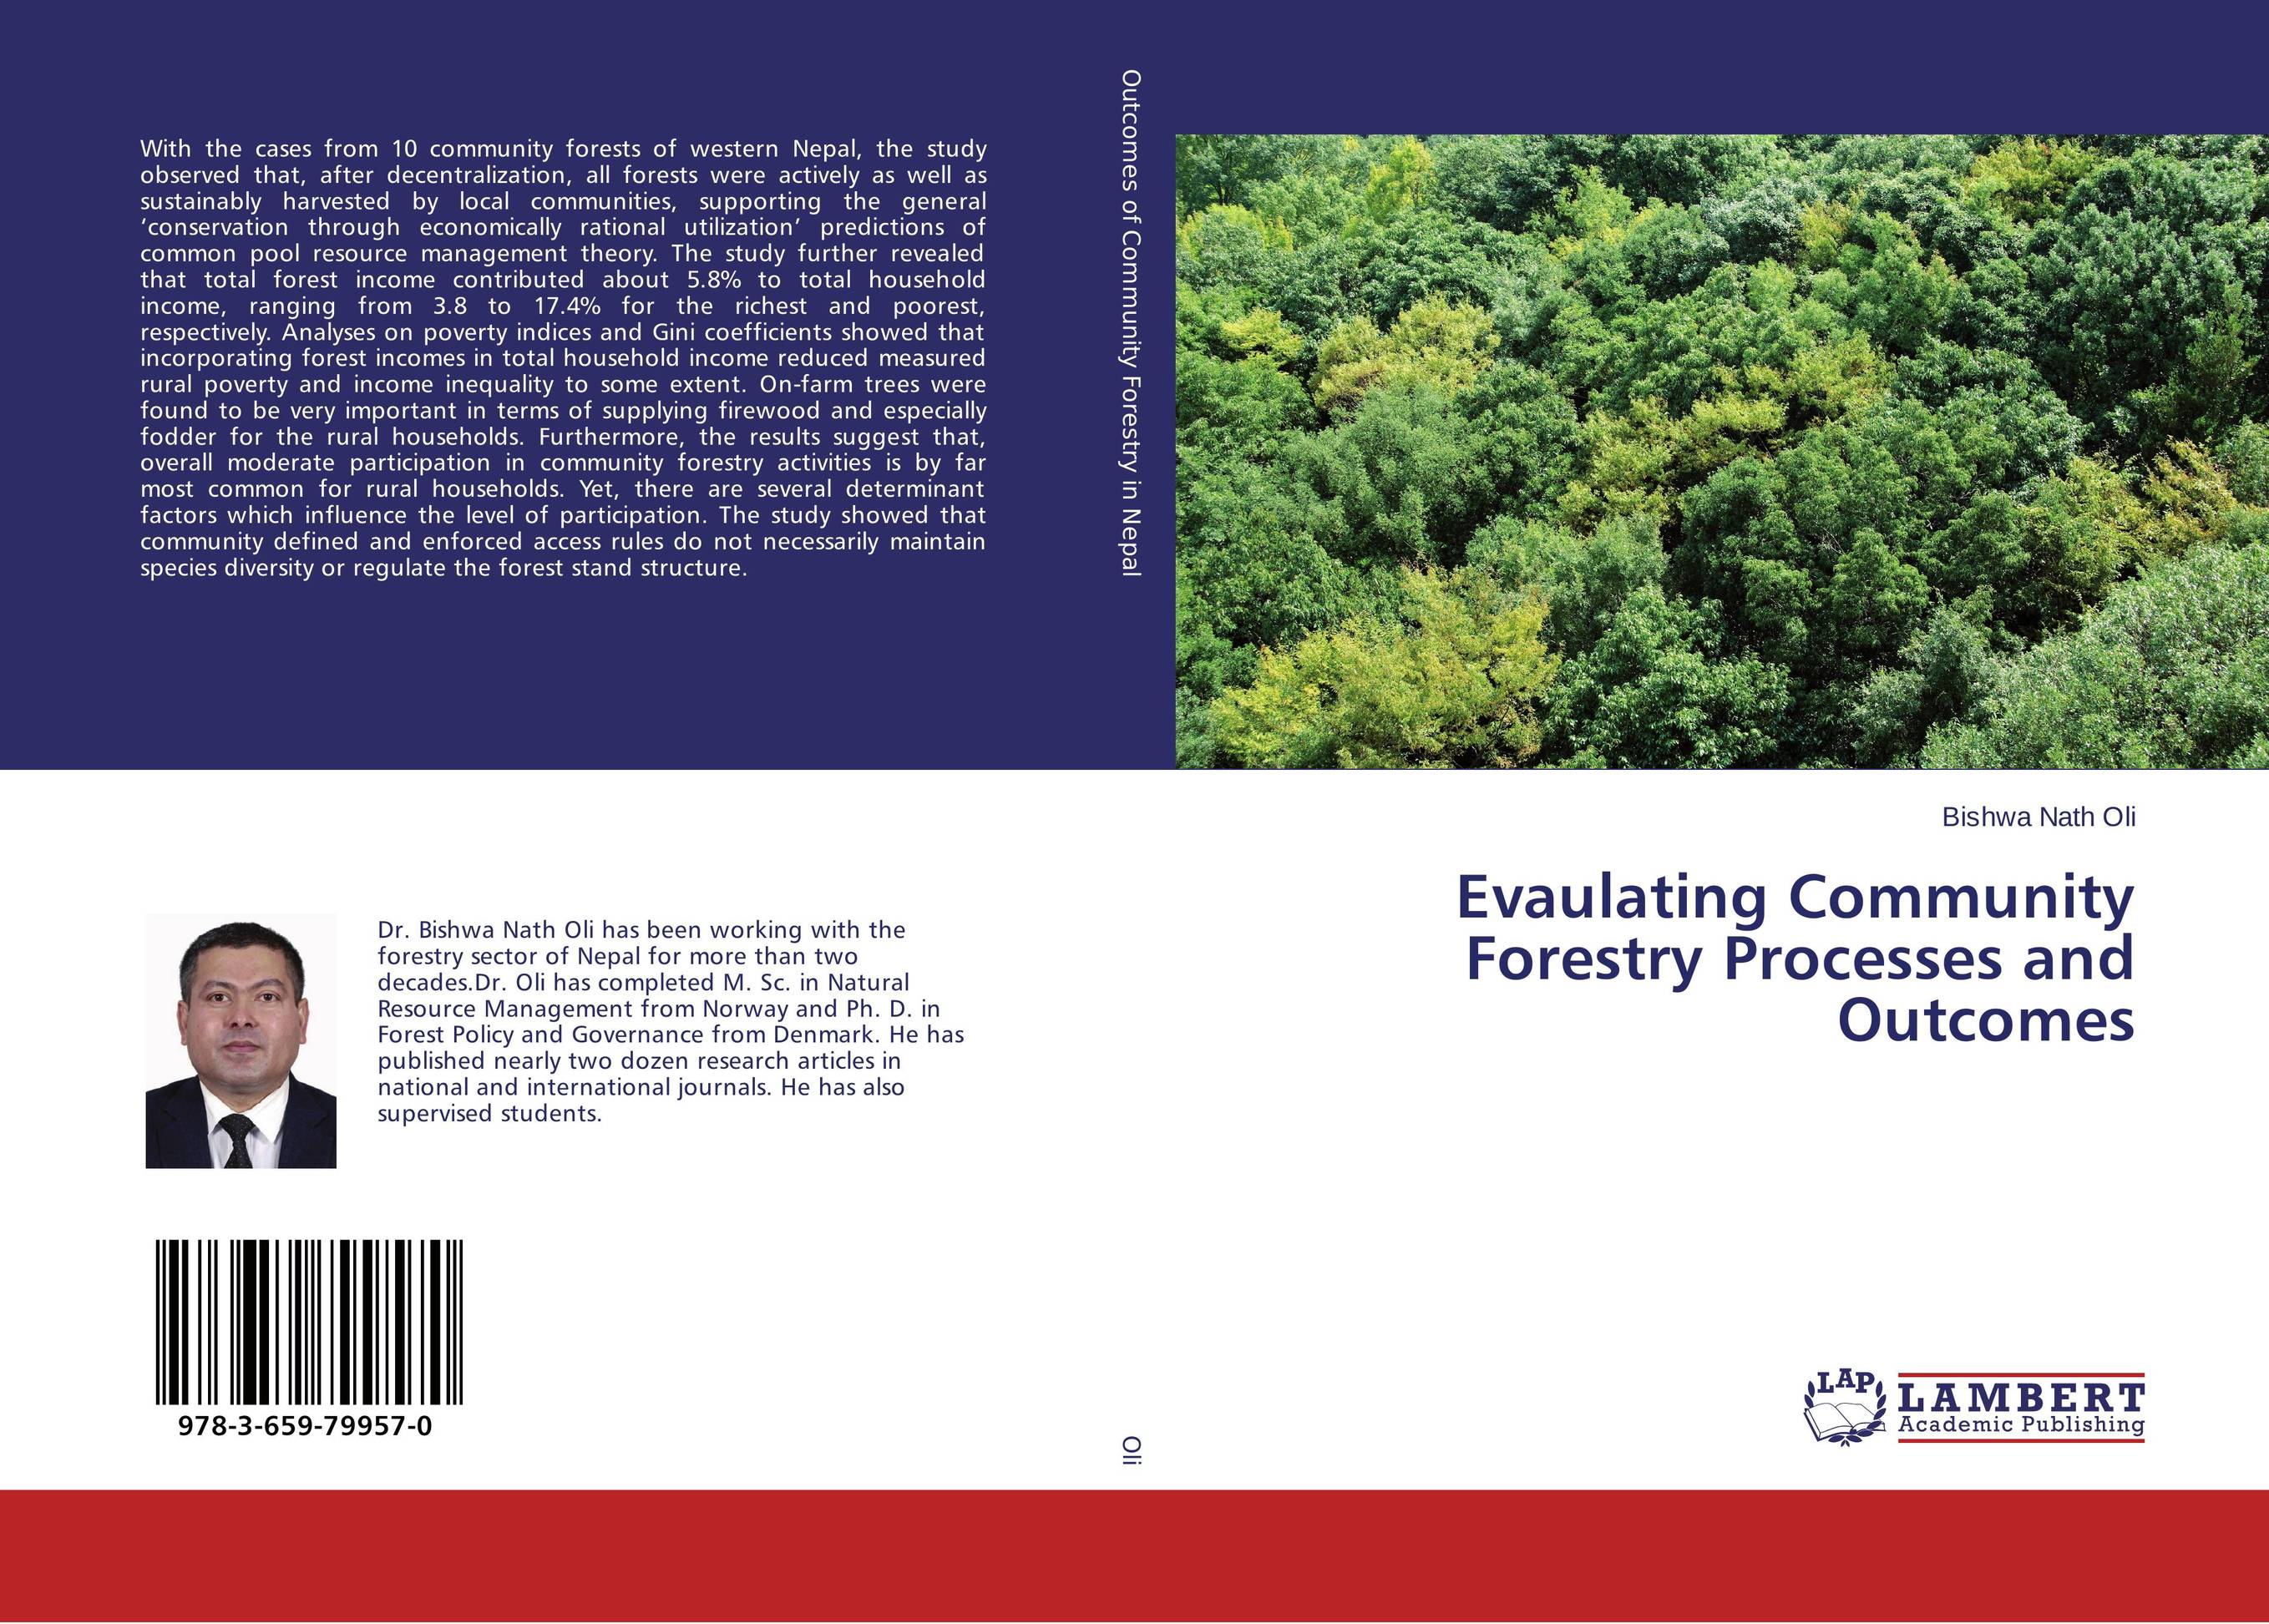 цена на Evaulating Community Forestry Processes and Outcomes